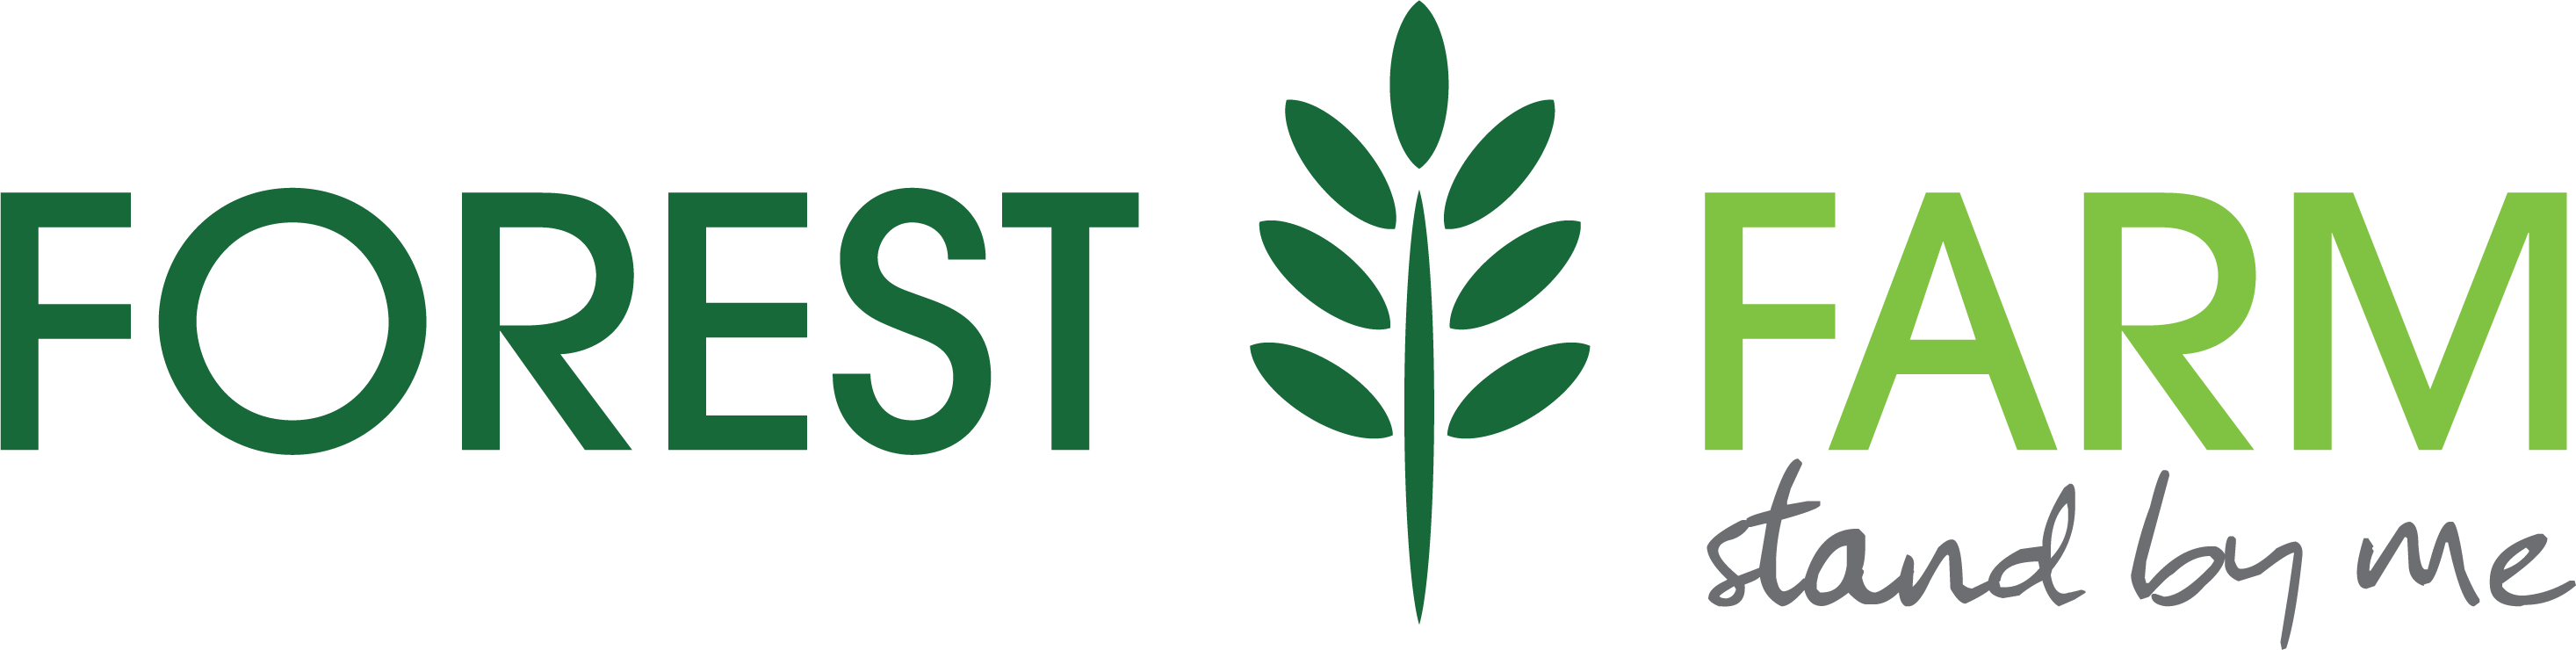 FOREST FARM_LOGO